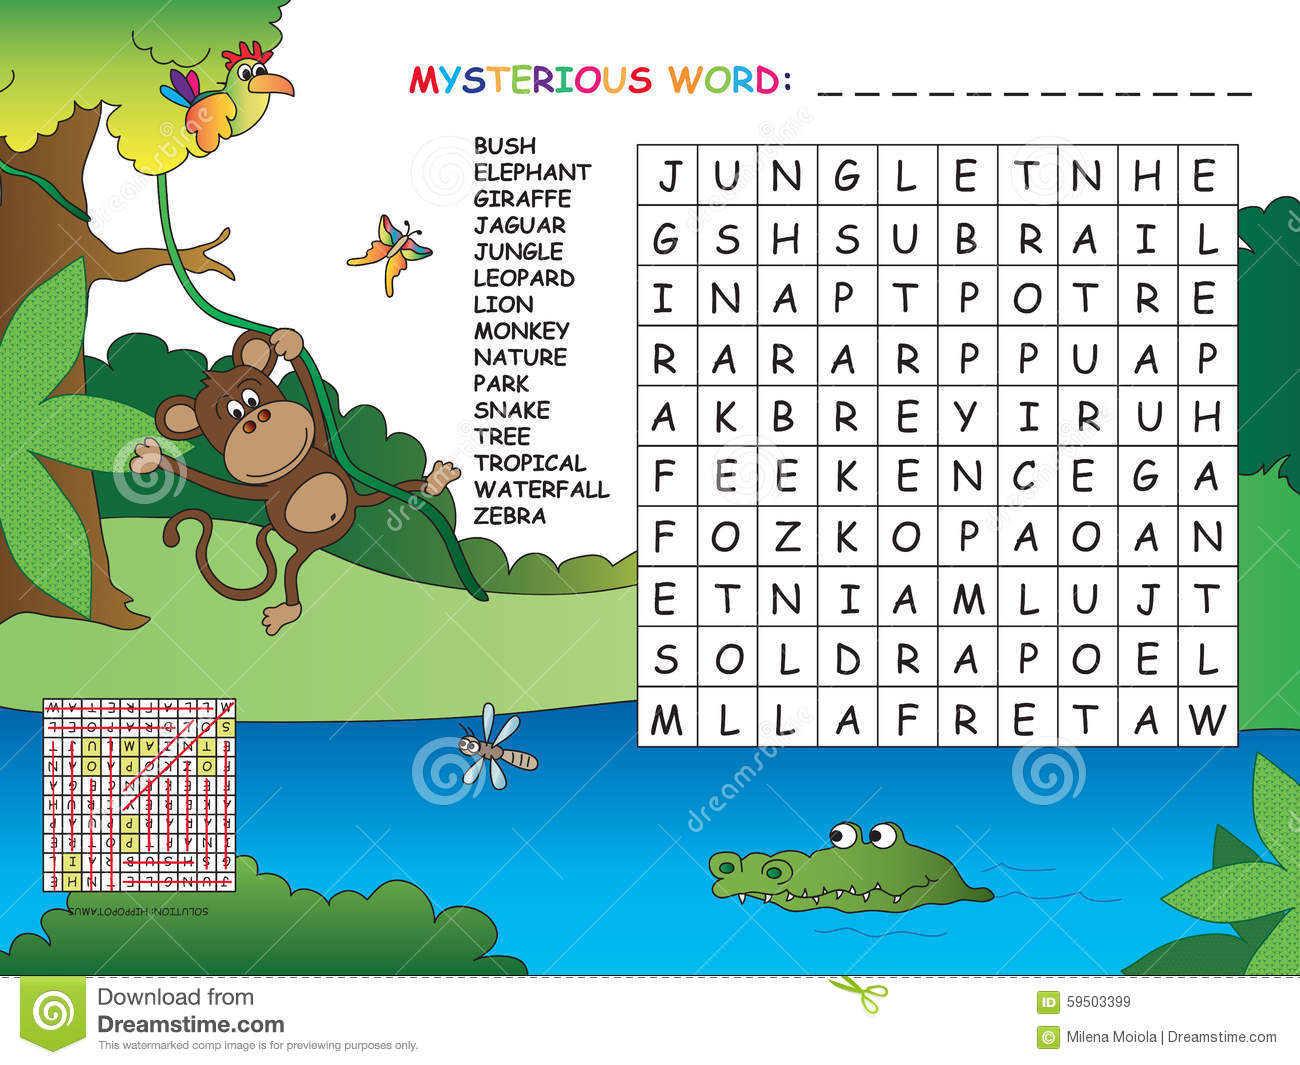 word how to find and change all letters